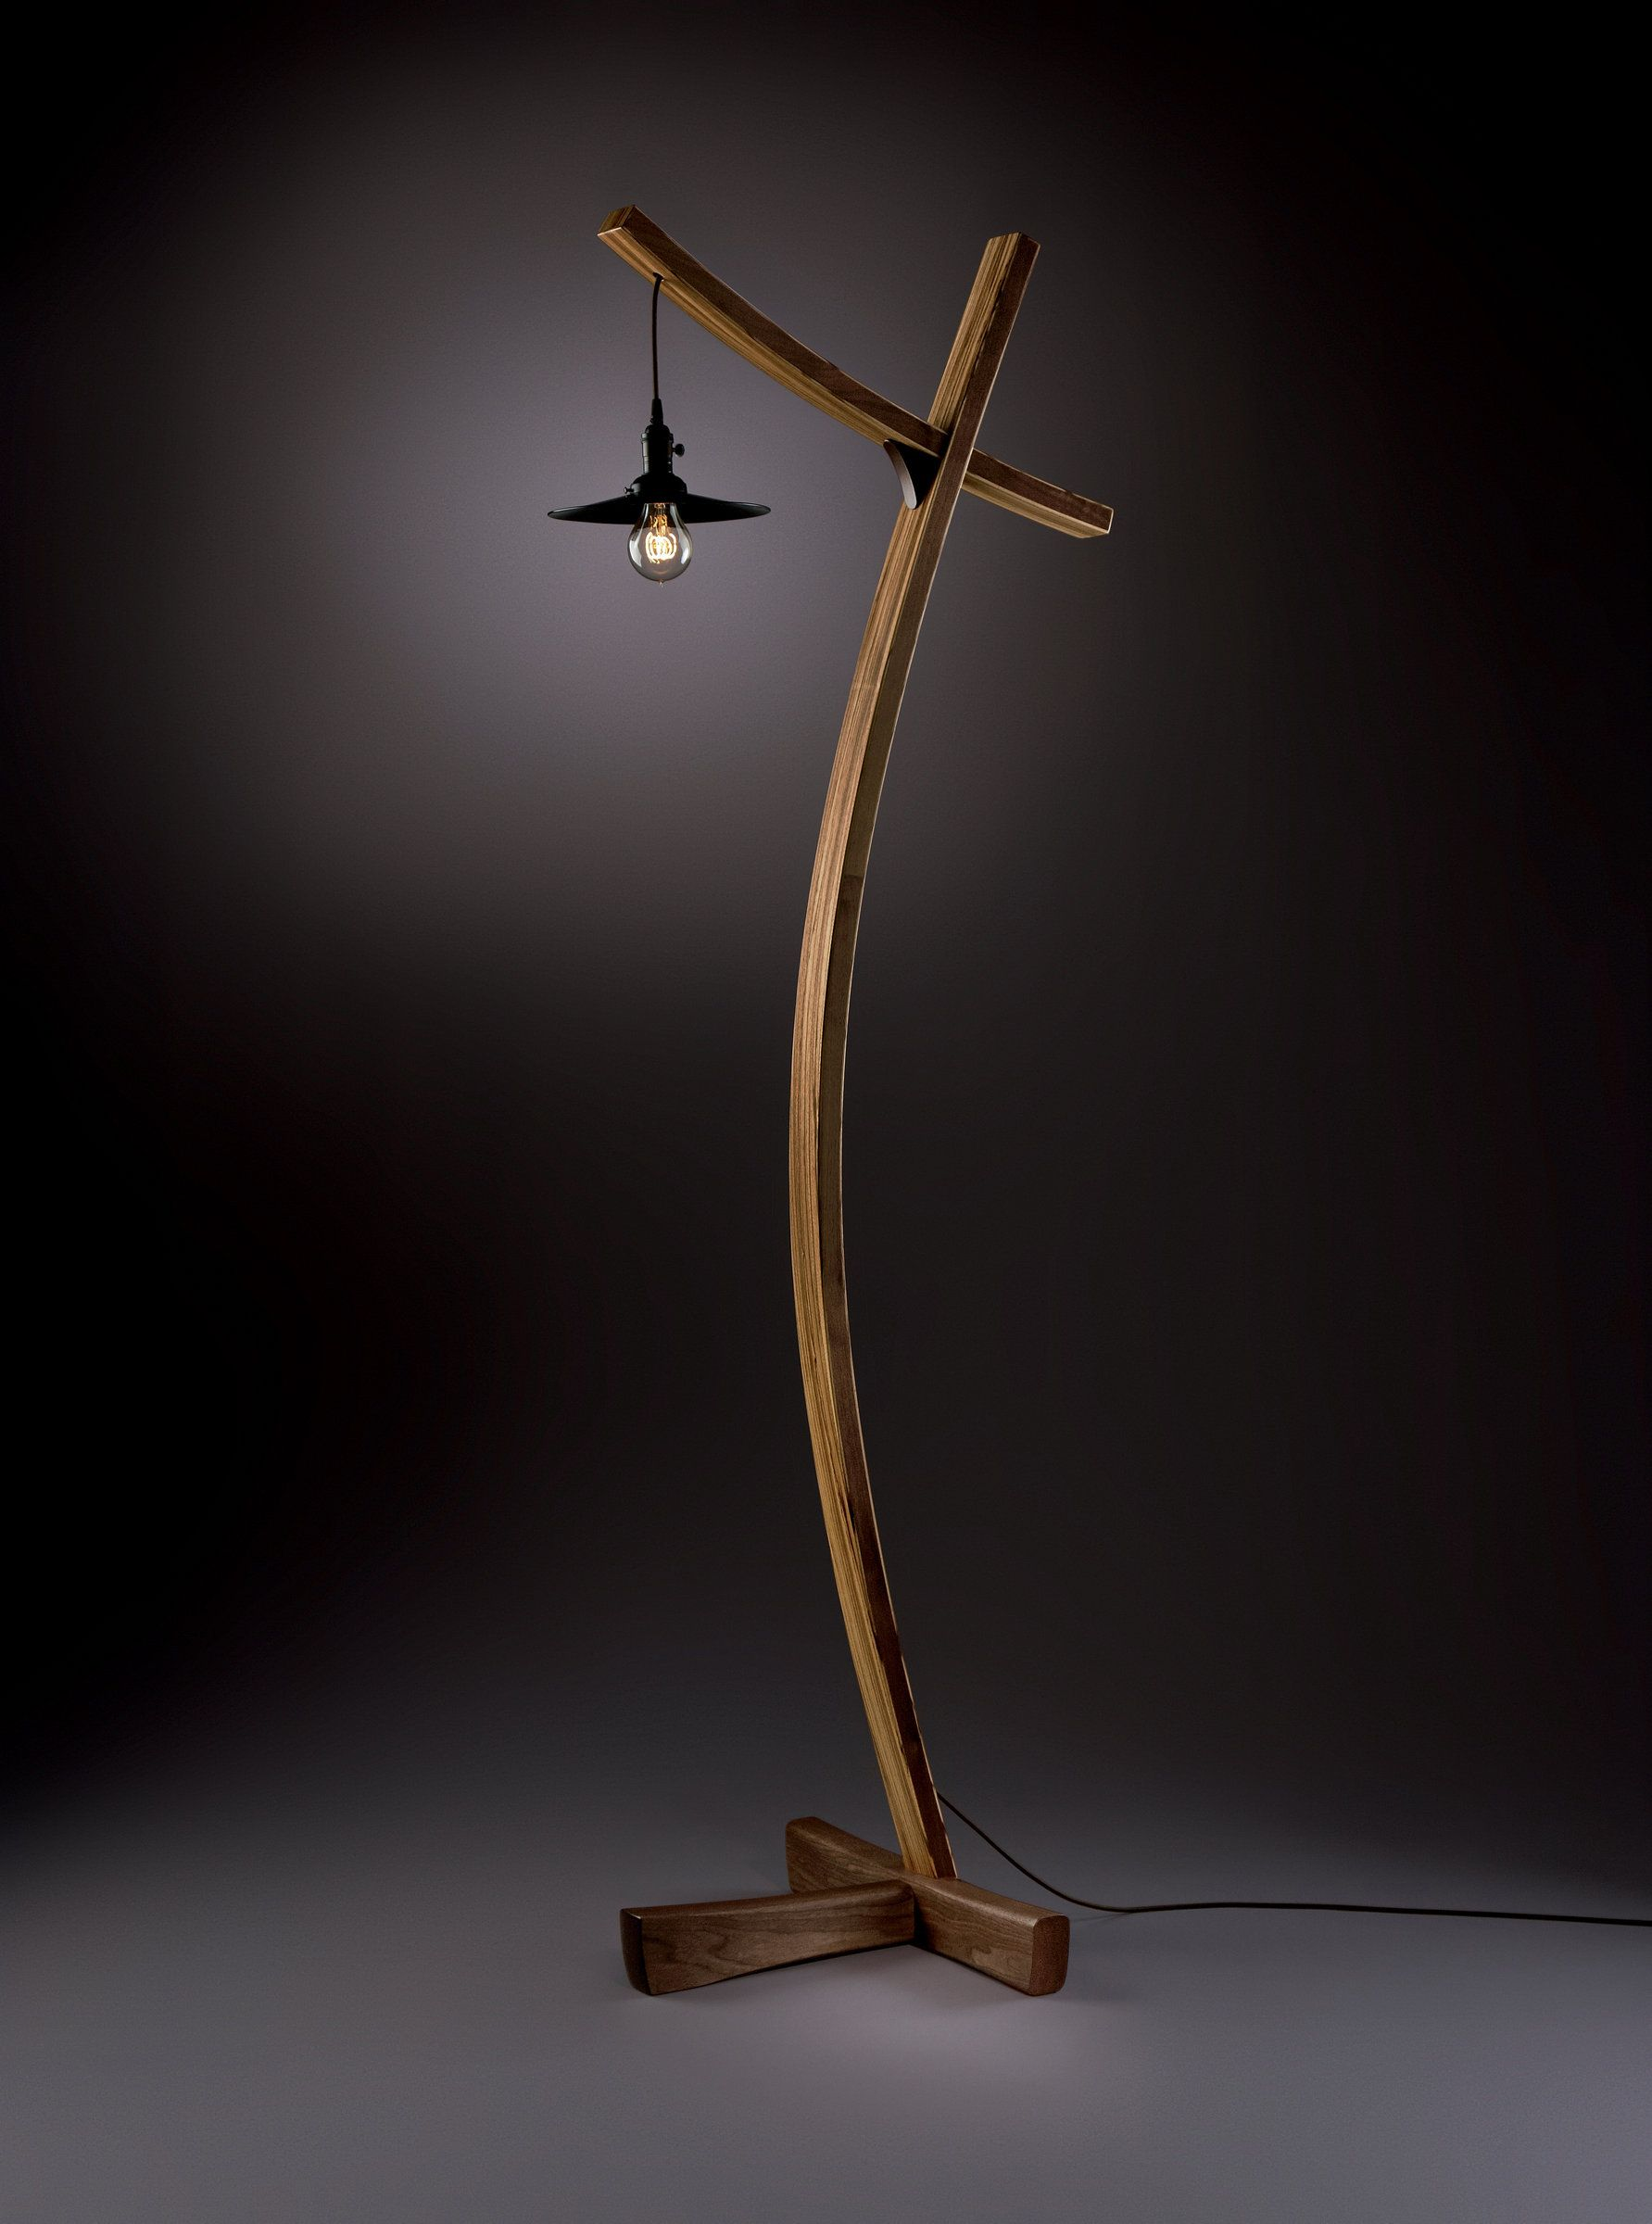 Aglow by brian hubel wood floor lamp wood grain bulbs and woods aglow by brian hubel wood floor lamp aloadofball Image collections